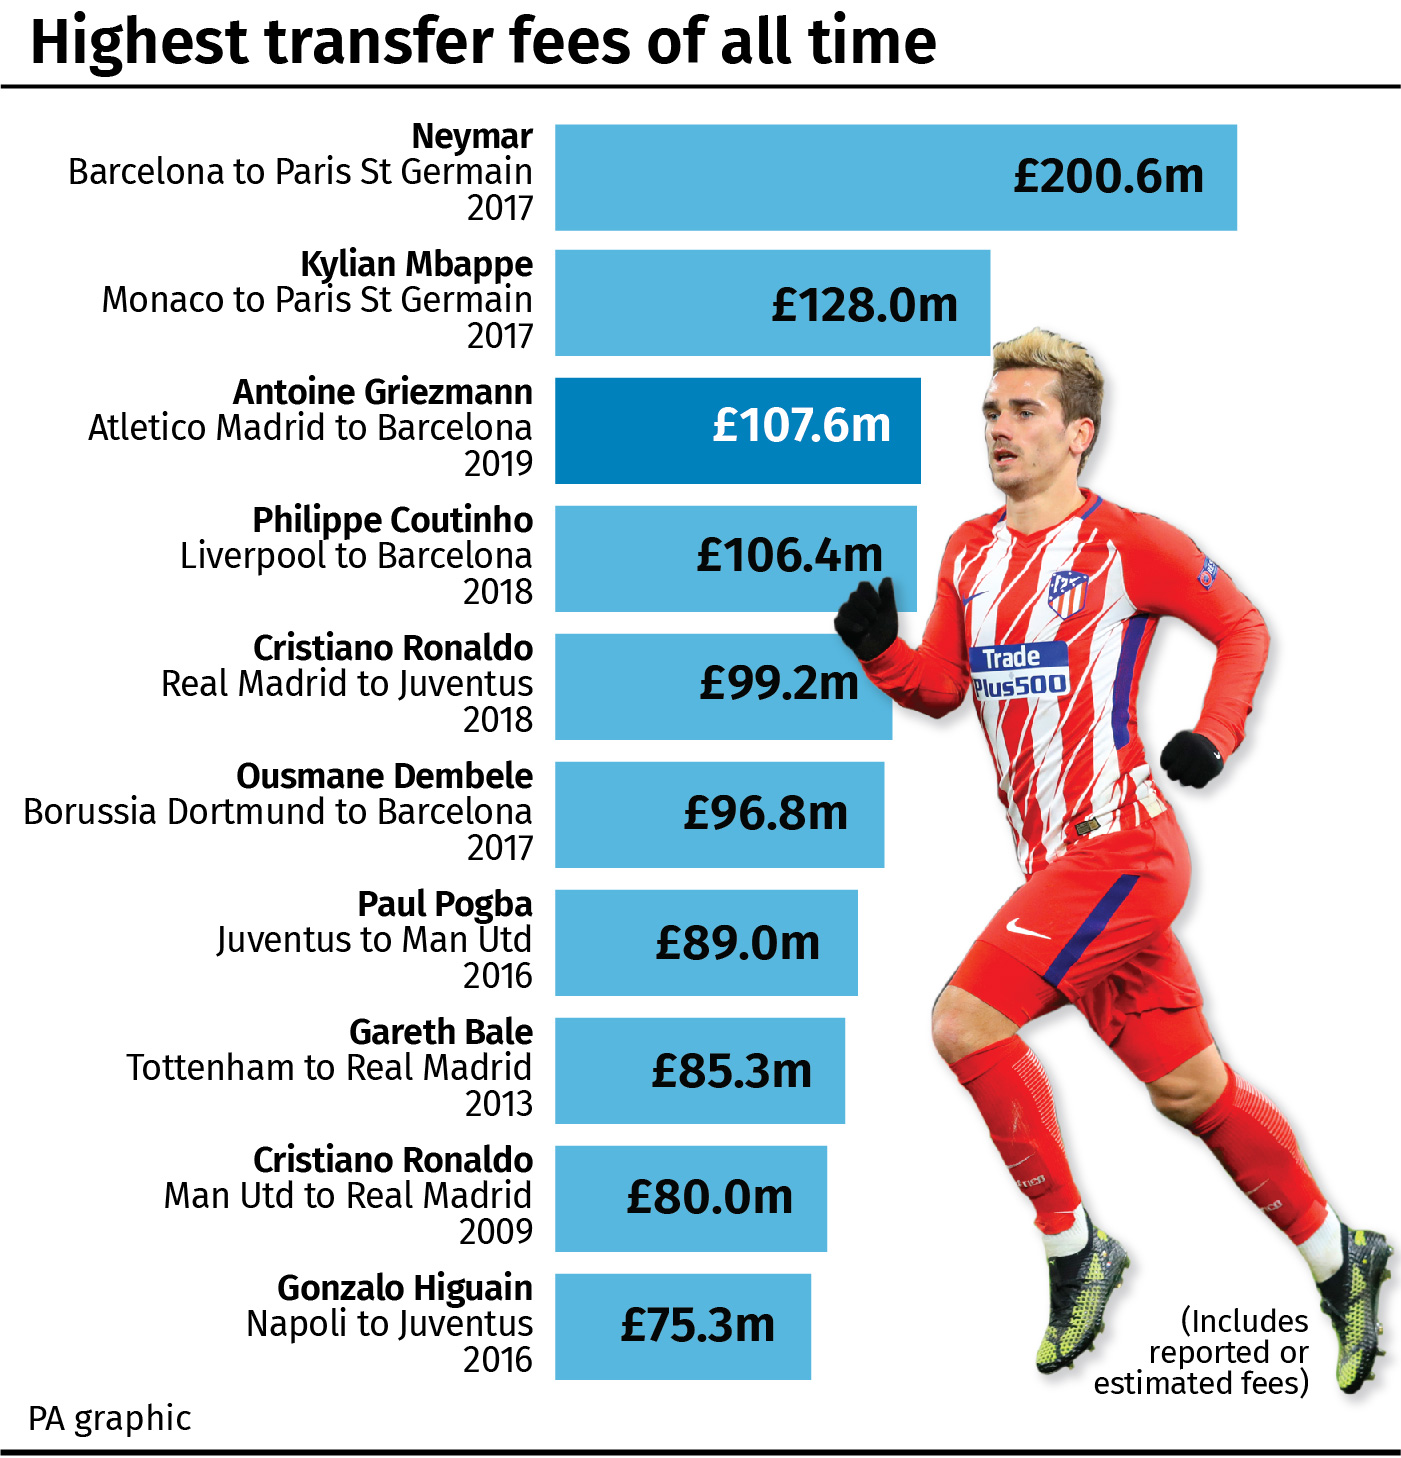 Highest transfer fees of all time